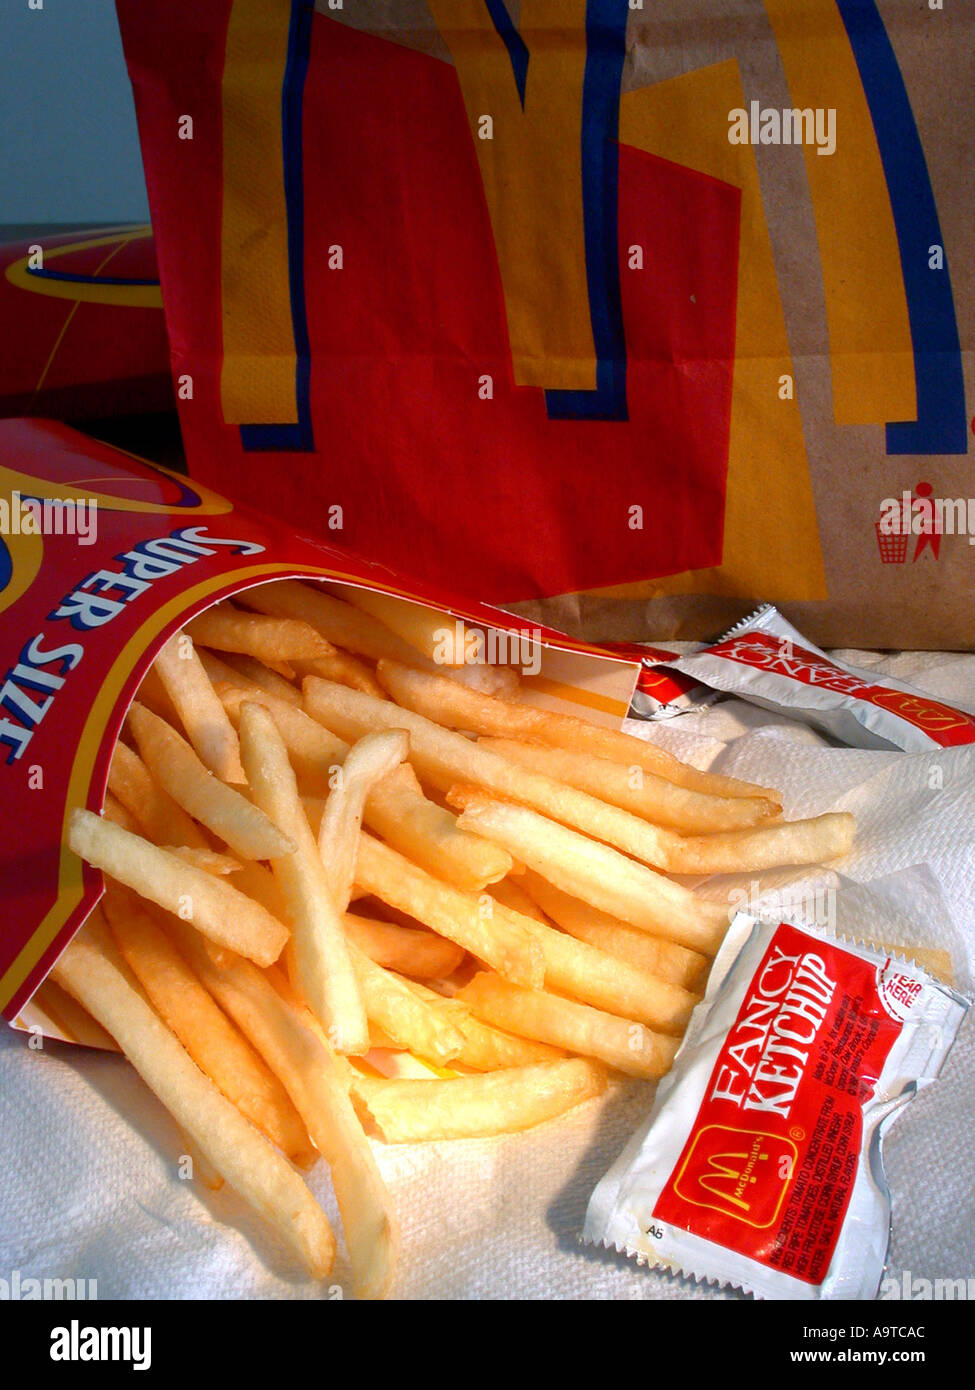 A Portion Of Mcdonald S Super Size Fries Stock Photo 2313387 Alamy